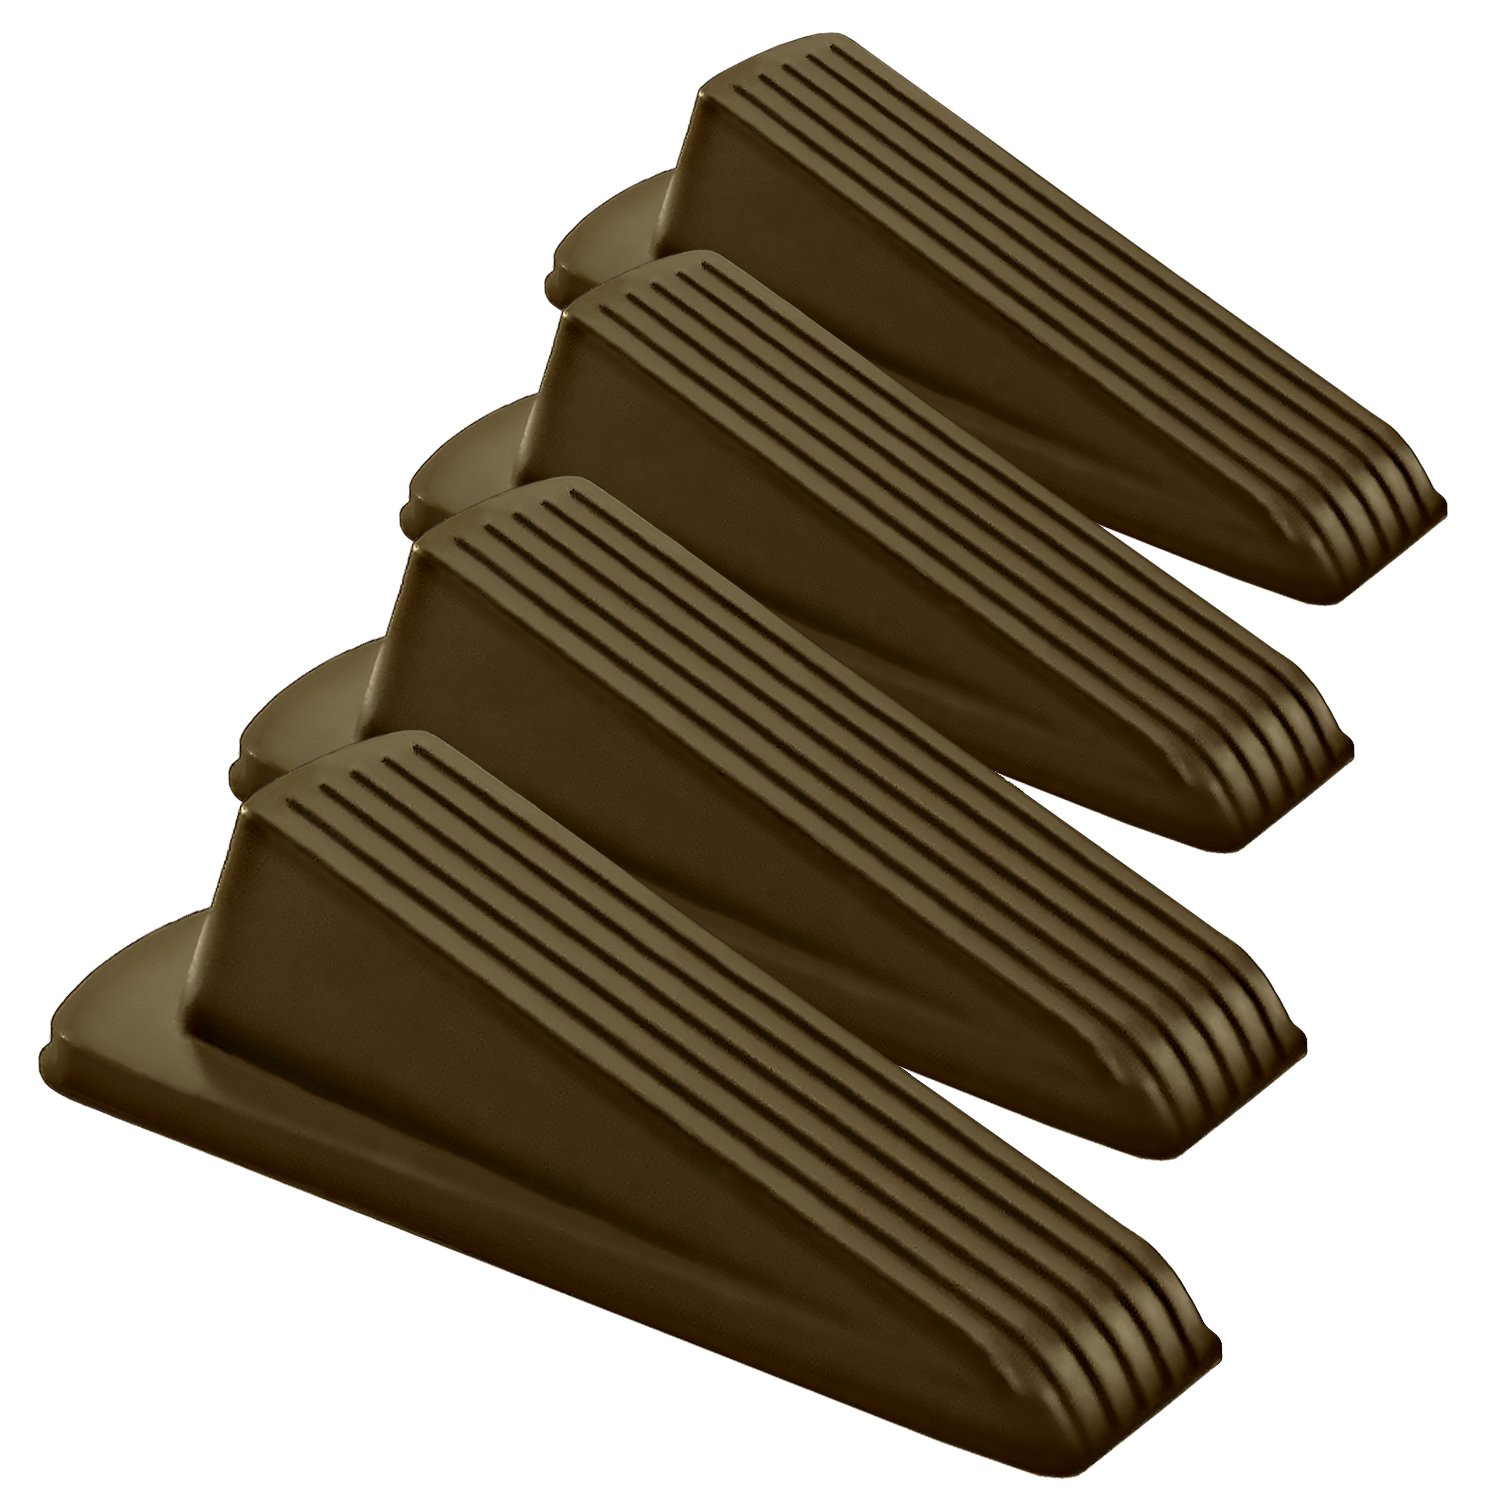 Home Premium Rubber Door Stopper - Multi Surface Door Stop Wedge with Heavy Duty Design - Flexible and Non Scratching Door Holder (50 Pack, Brown) by HOME PREMIUM